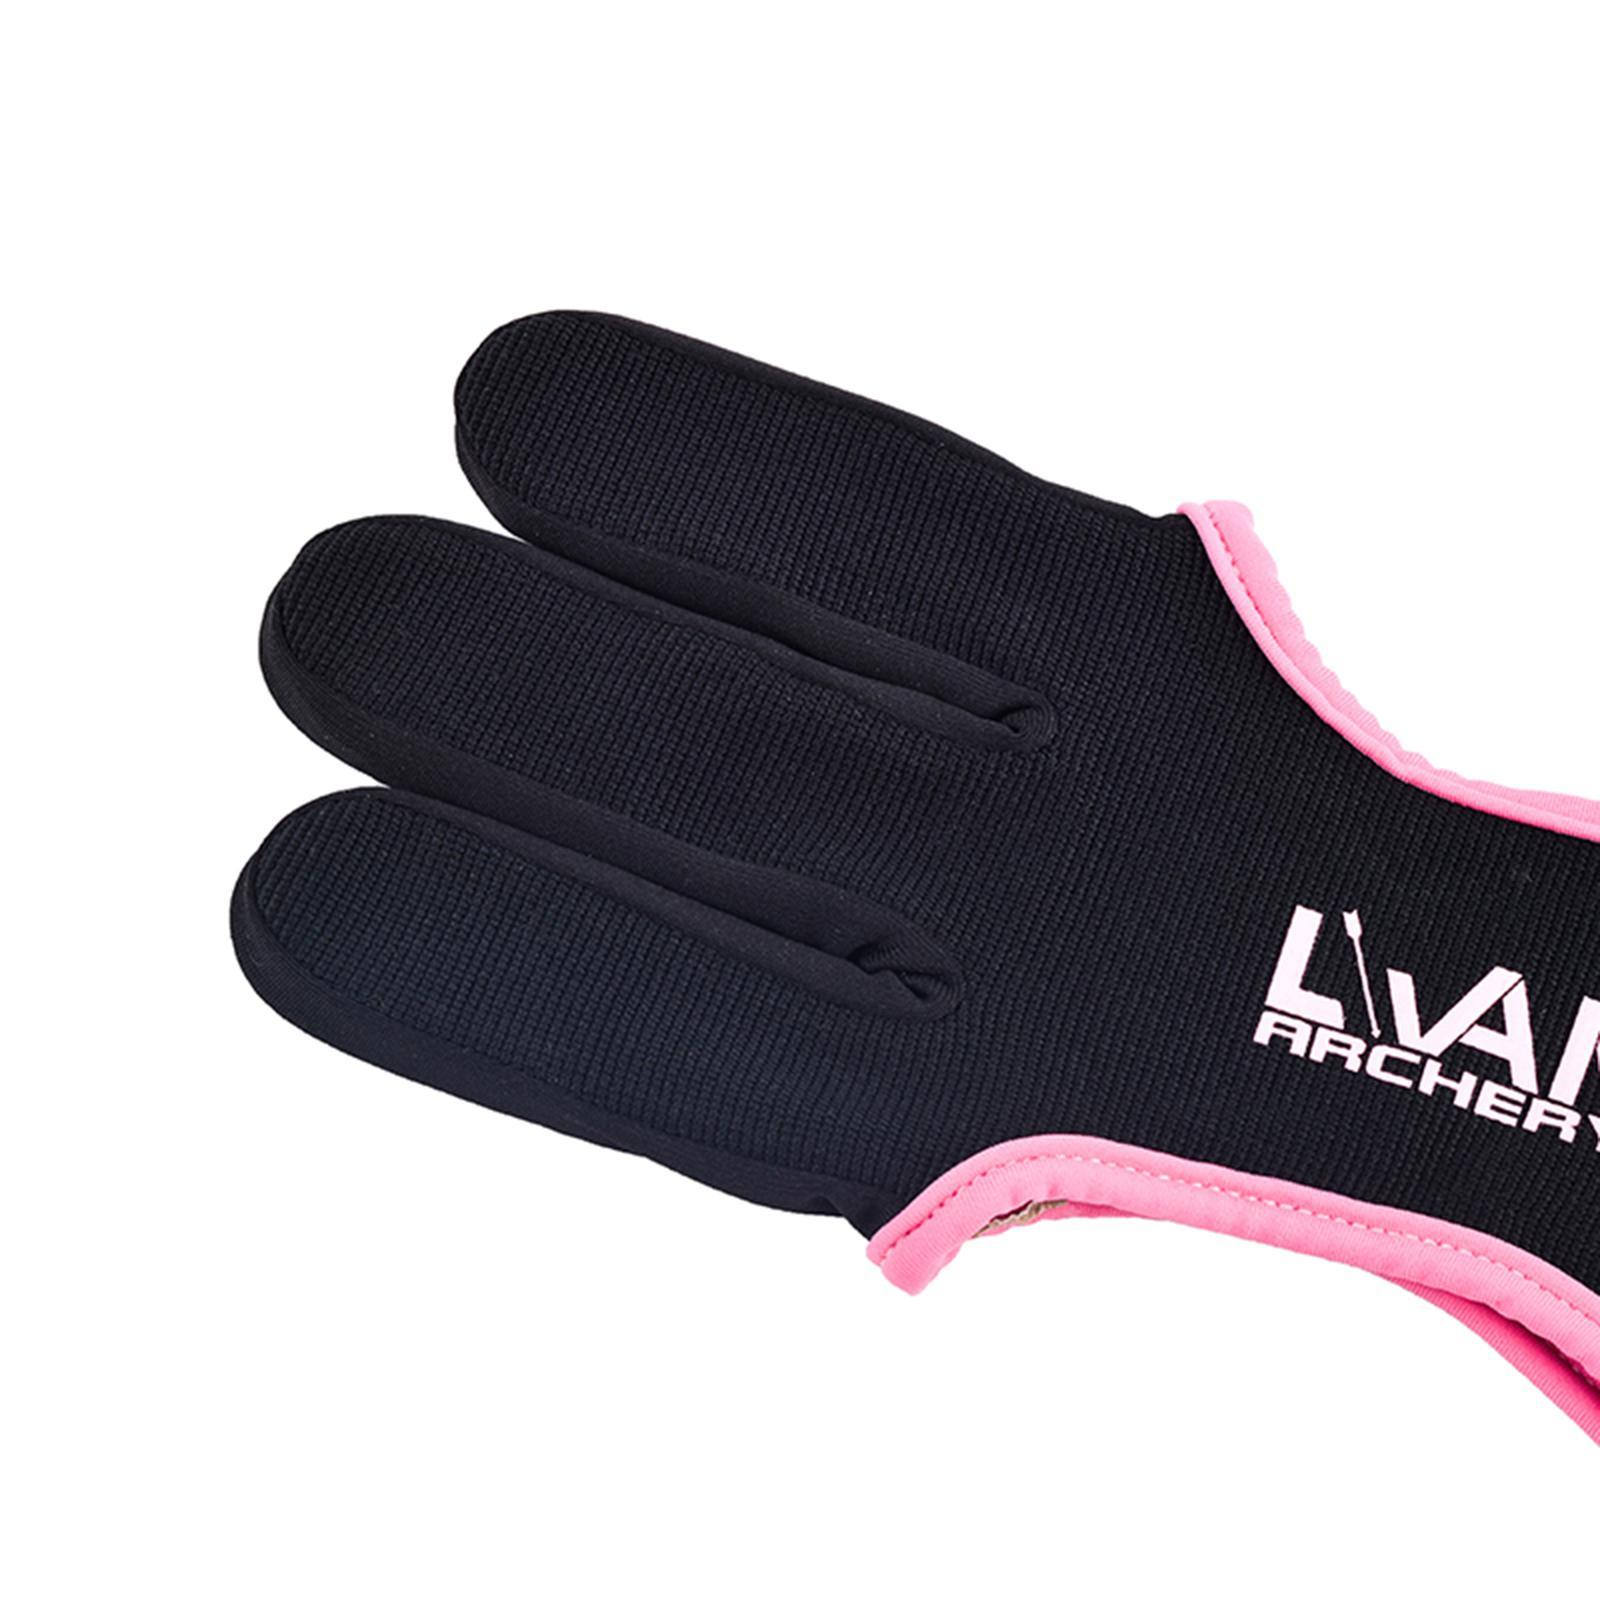 thumbnail 34 - Archery Glove for Recurve & Compound Bow 3 Finger Guard for Women Men Youth